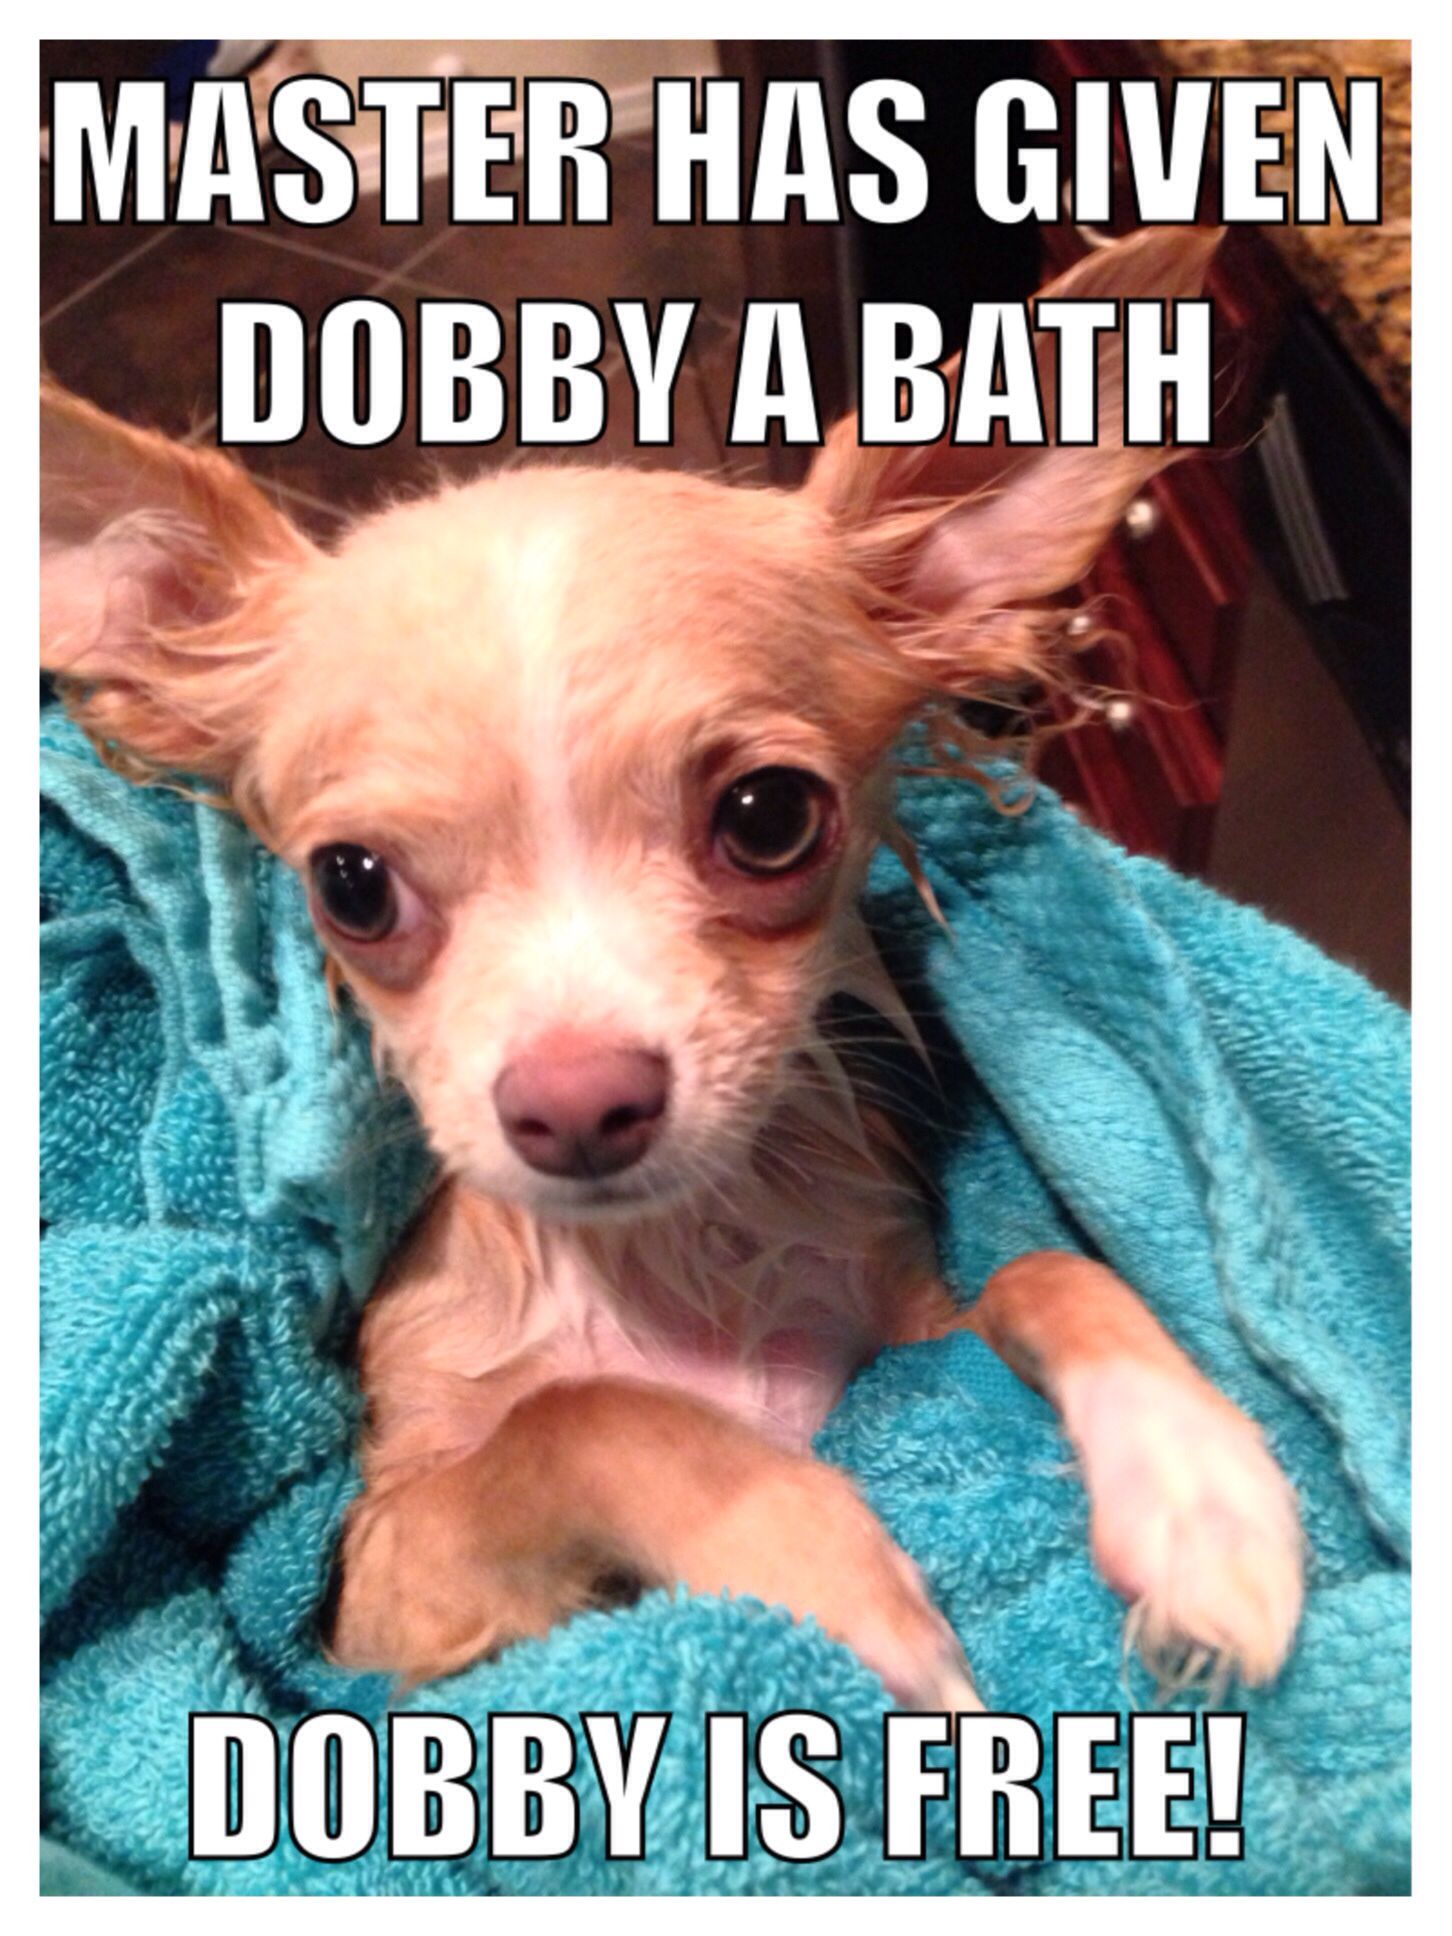 Funny Puppy Meme Love The Harry Potter Reference Dog Memes Clean Puppies Funny Funny Puppy Memes